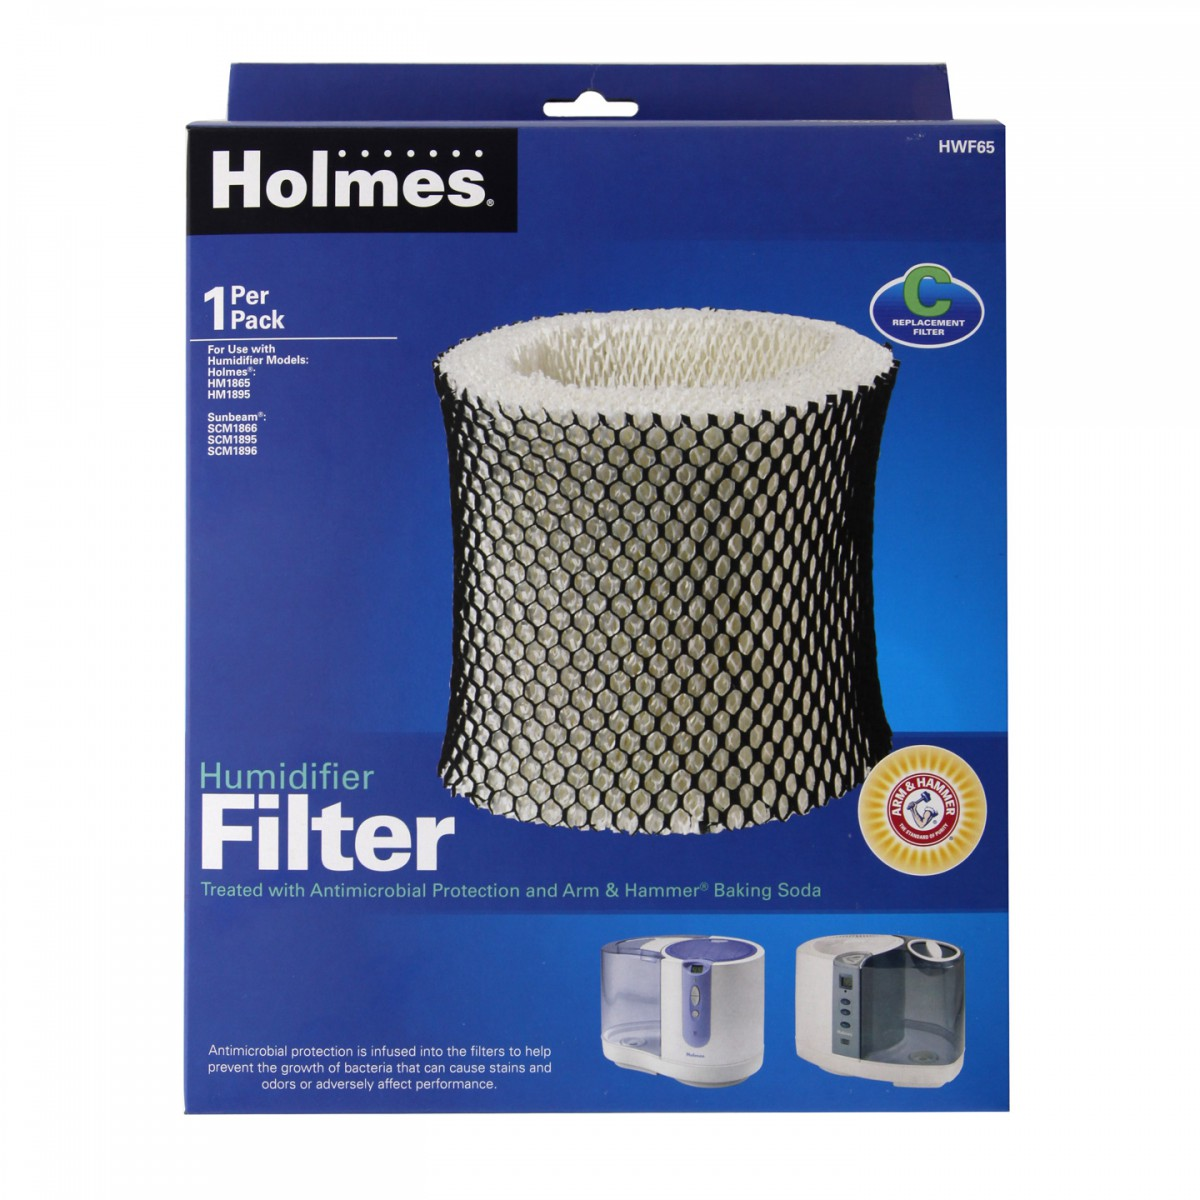 Holmes HWF65PDQ U Humidifier Wick Filter 'C' DiscountFilterStore.com #1661B5